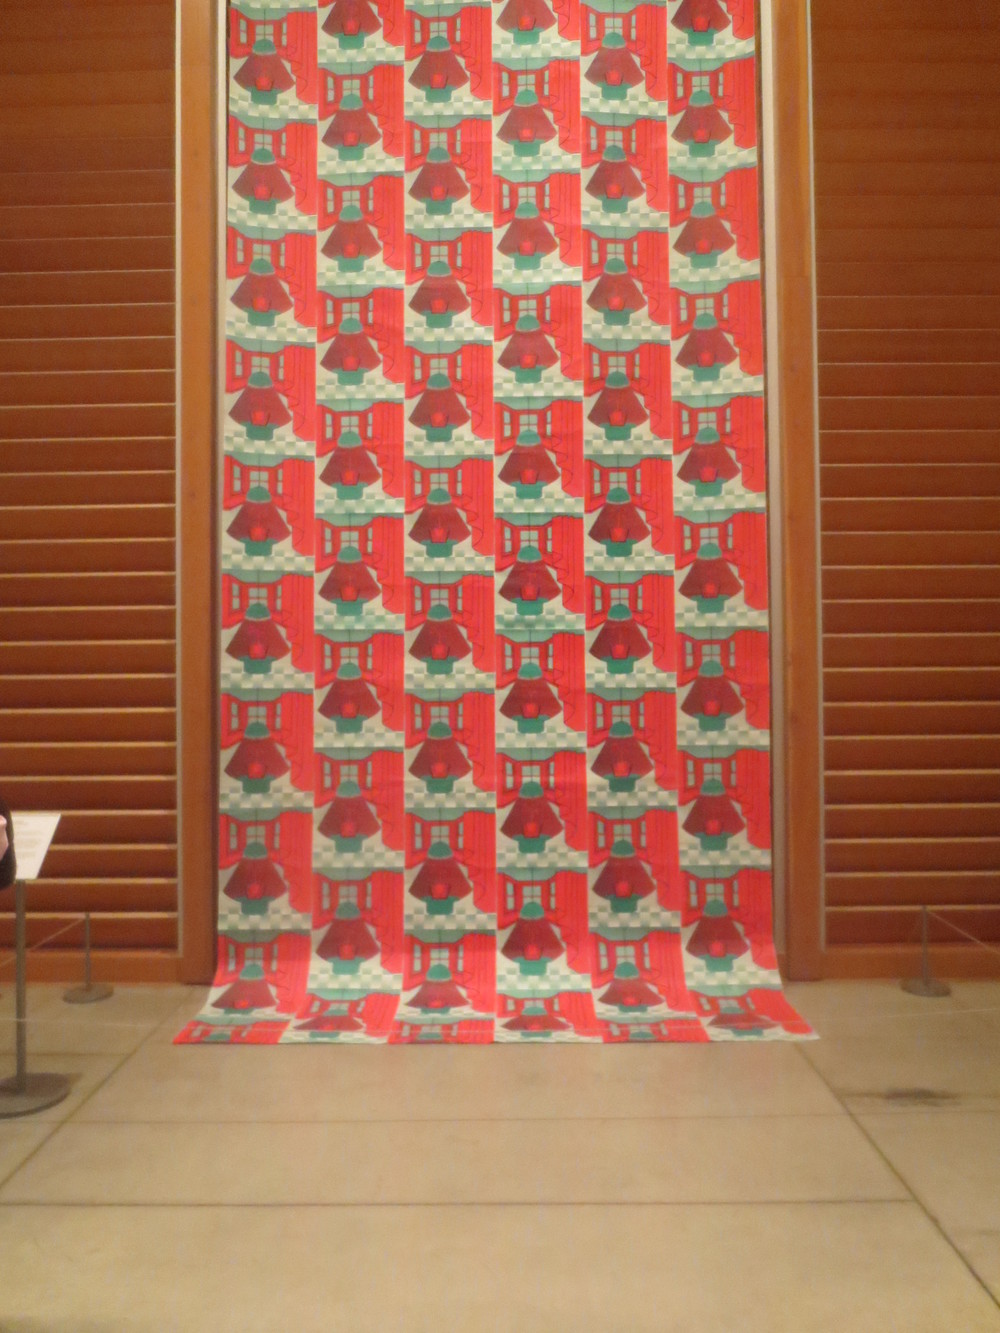 A stone is nobody's  Screenprinted banner  9ft x 22ft  Art Gallery of Ontario First Thursday  March 2014